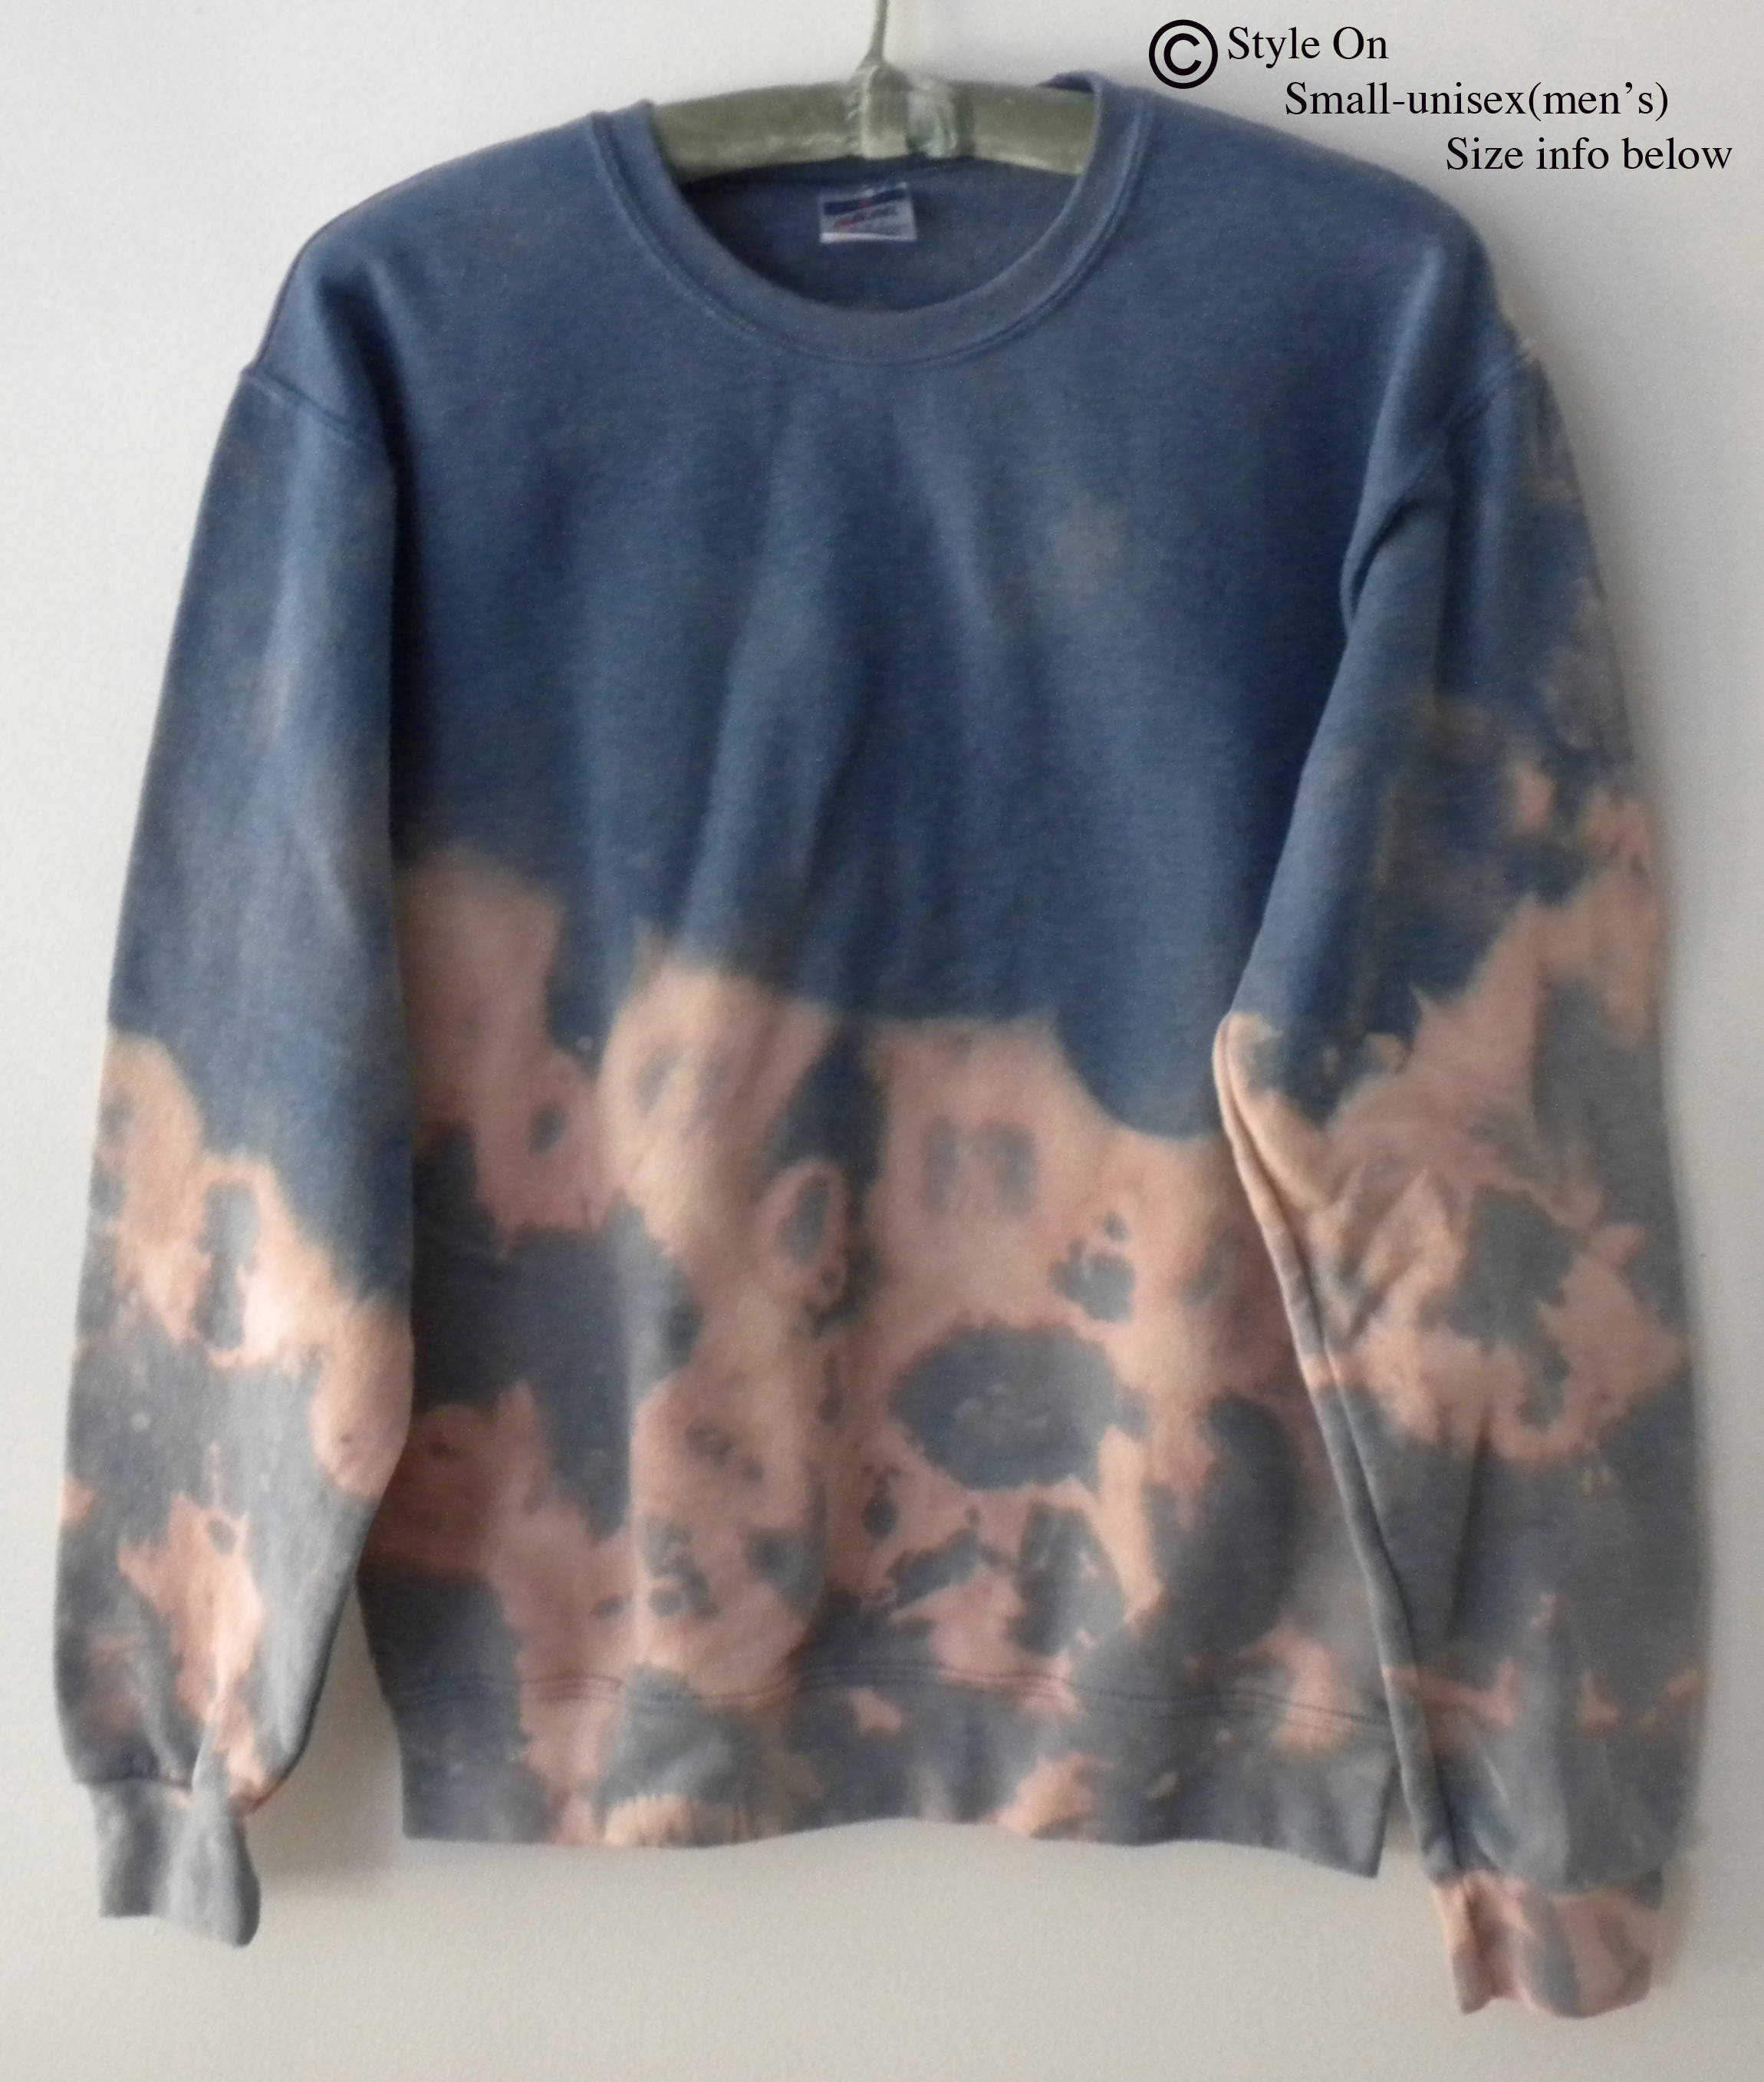 Sweatshirt, Gray crewneck sweatshirt, tie dye, jumper, acid wash crewneck, grunge, graphic, Boho, Art, ombre,rocker, retro